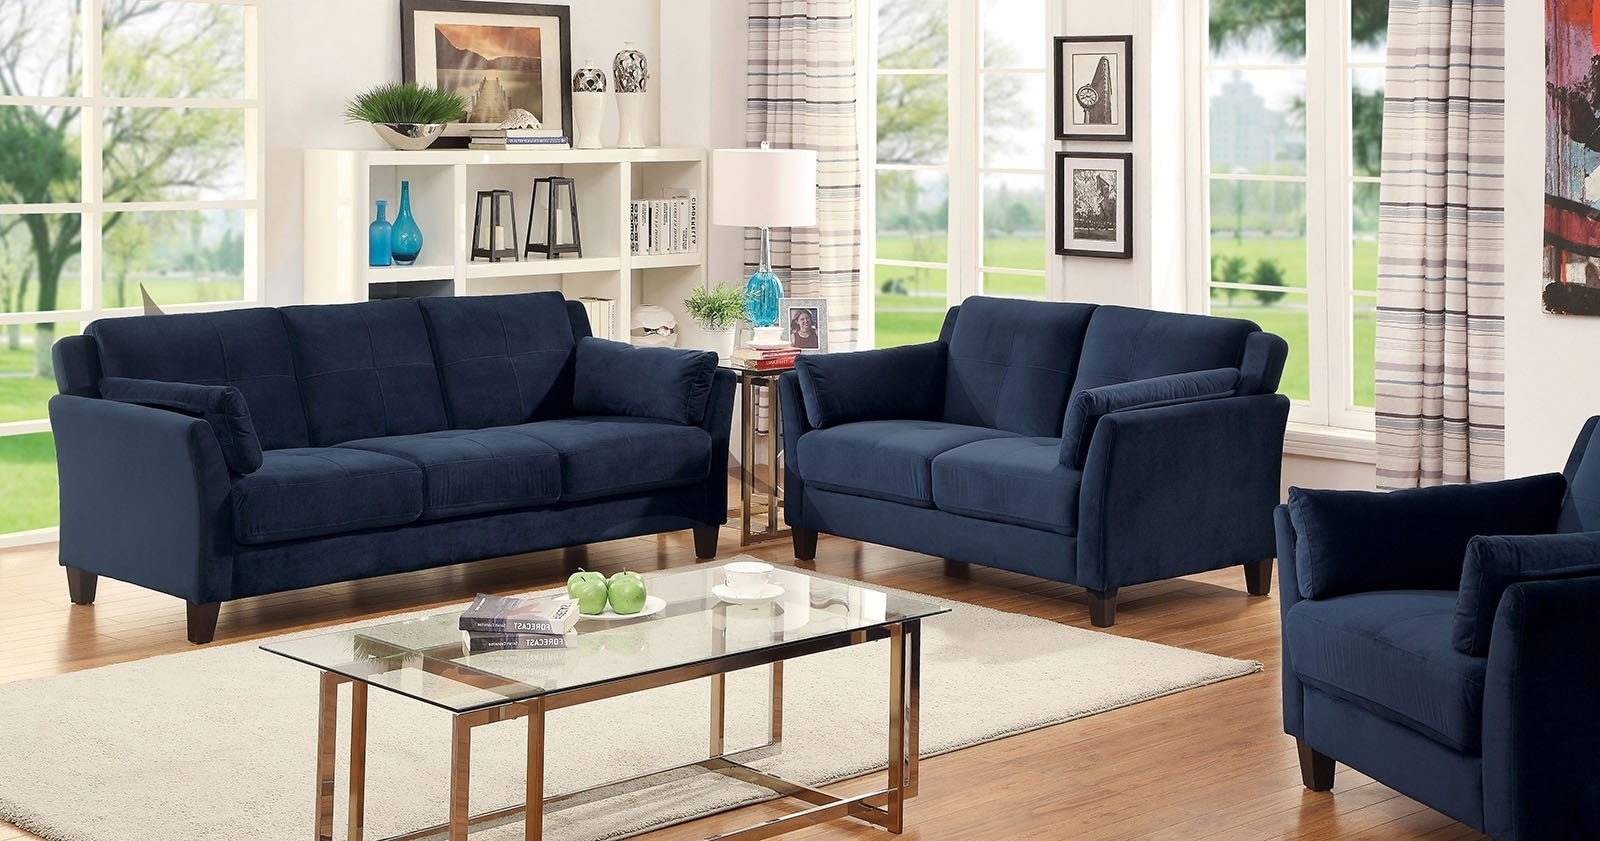 Sale 249494 Royal Home Sofa Set Riva Dark Blue 3Pc Sofa Awesome For Best And Newest Dark Blue Sofas (View 18 of 20)